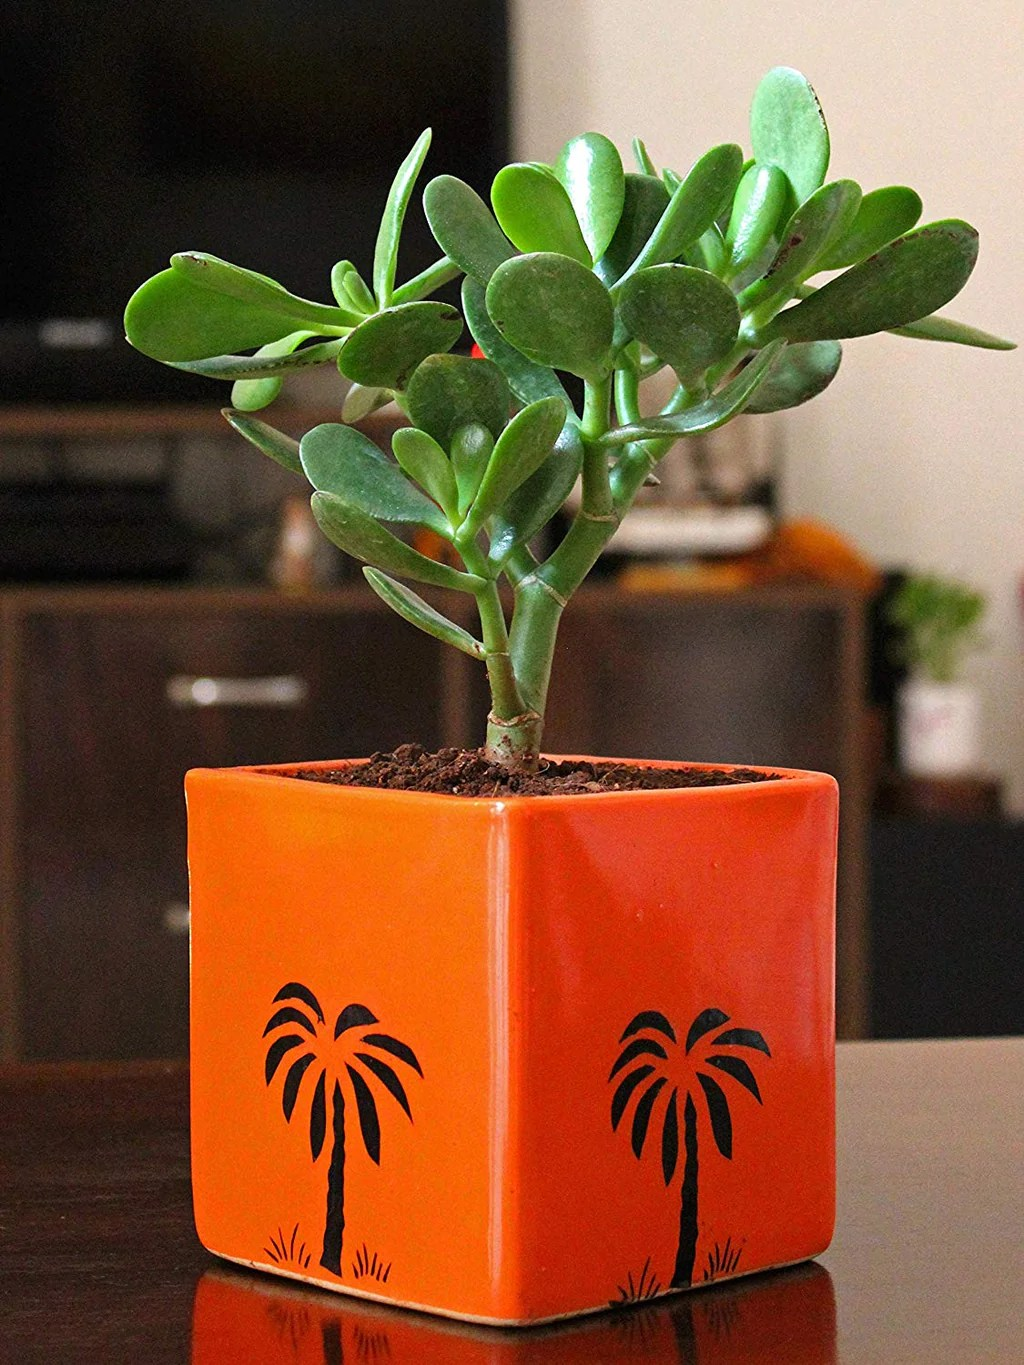 Buy Live Natural Indoor Plants Online India Think Green Live Green Rollingnature